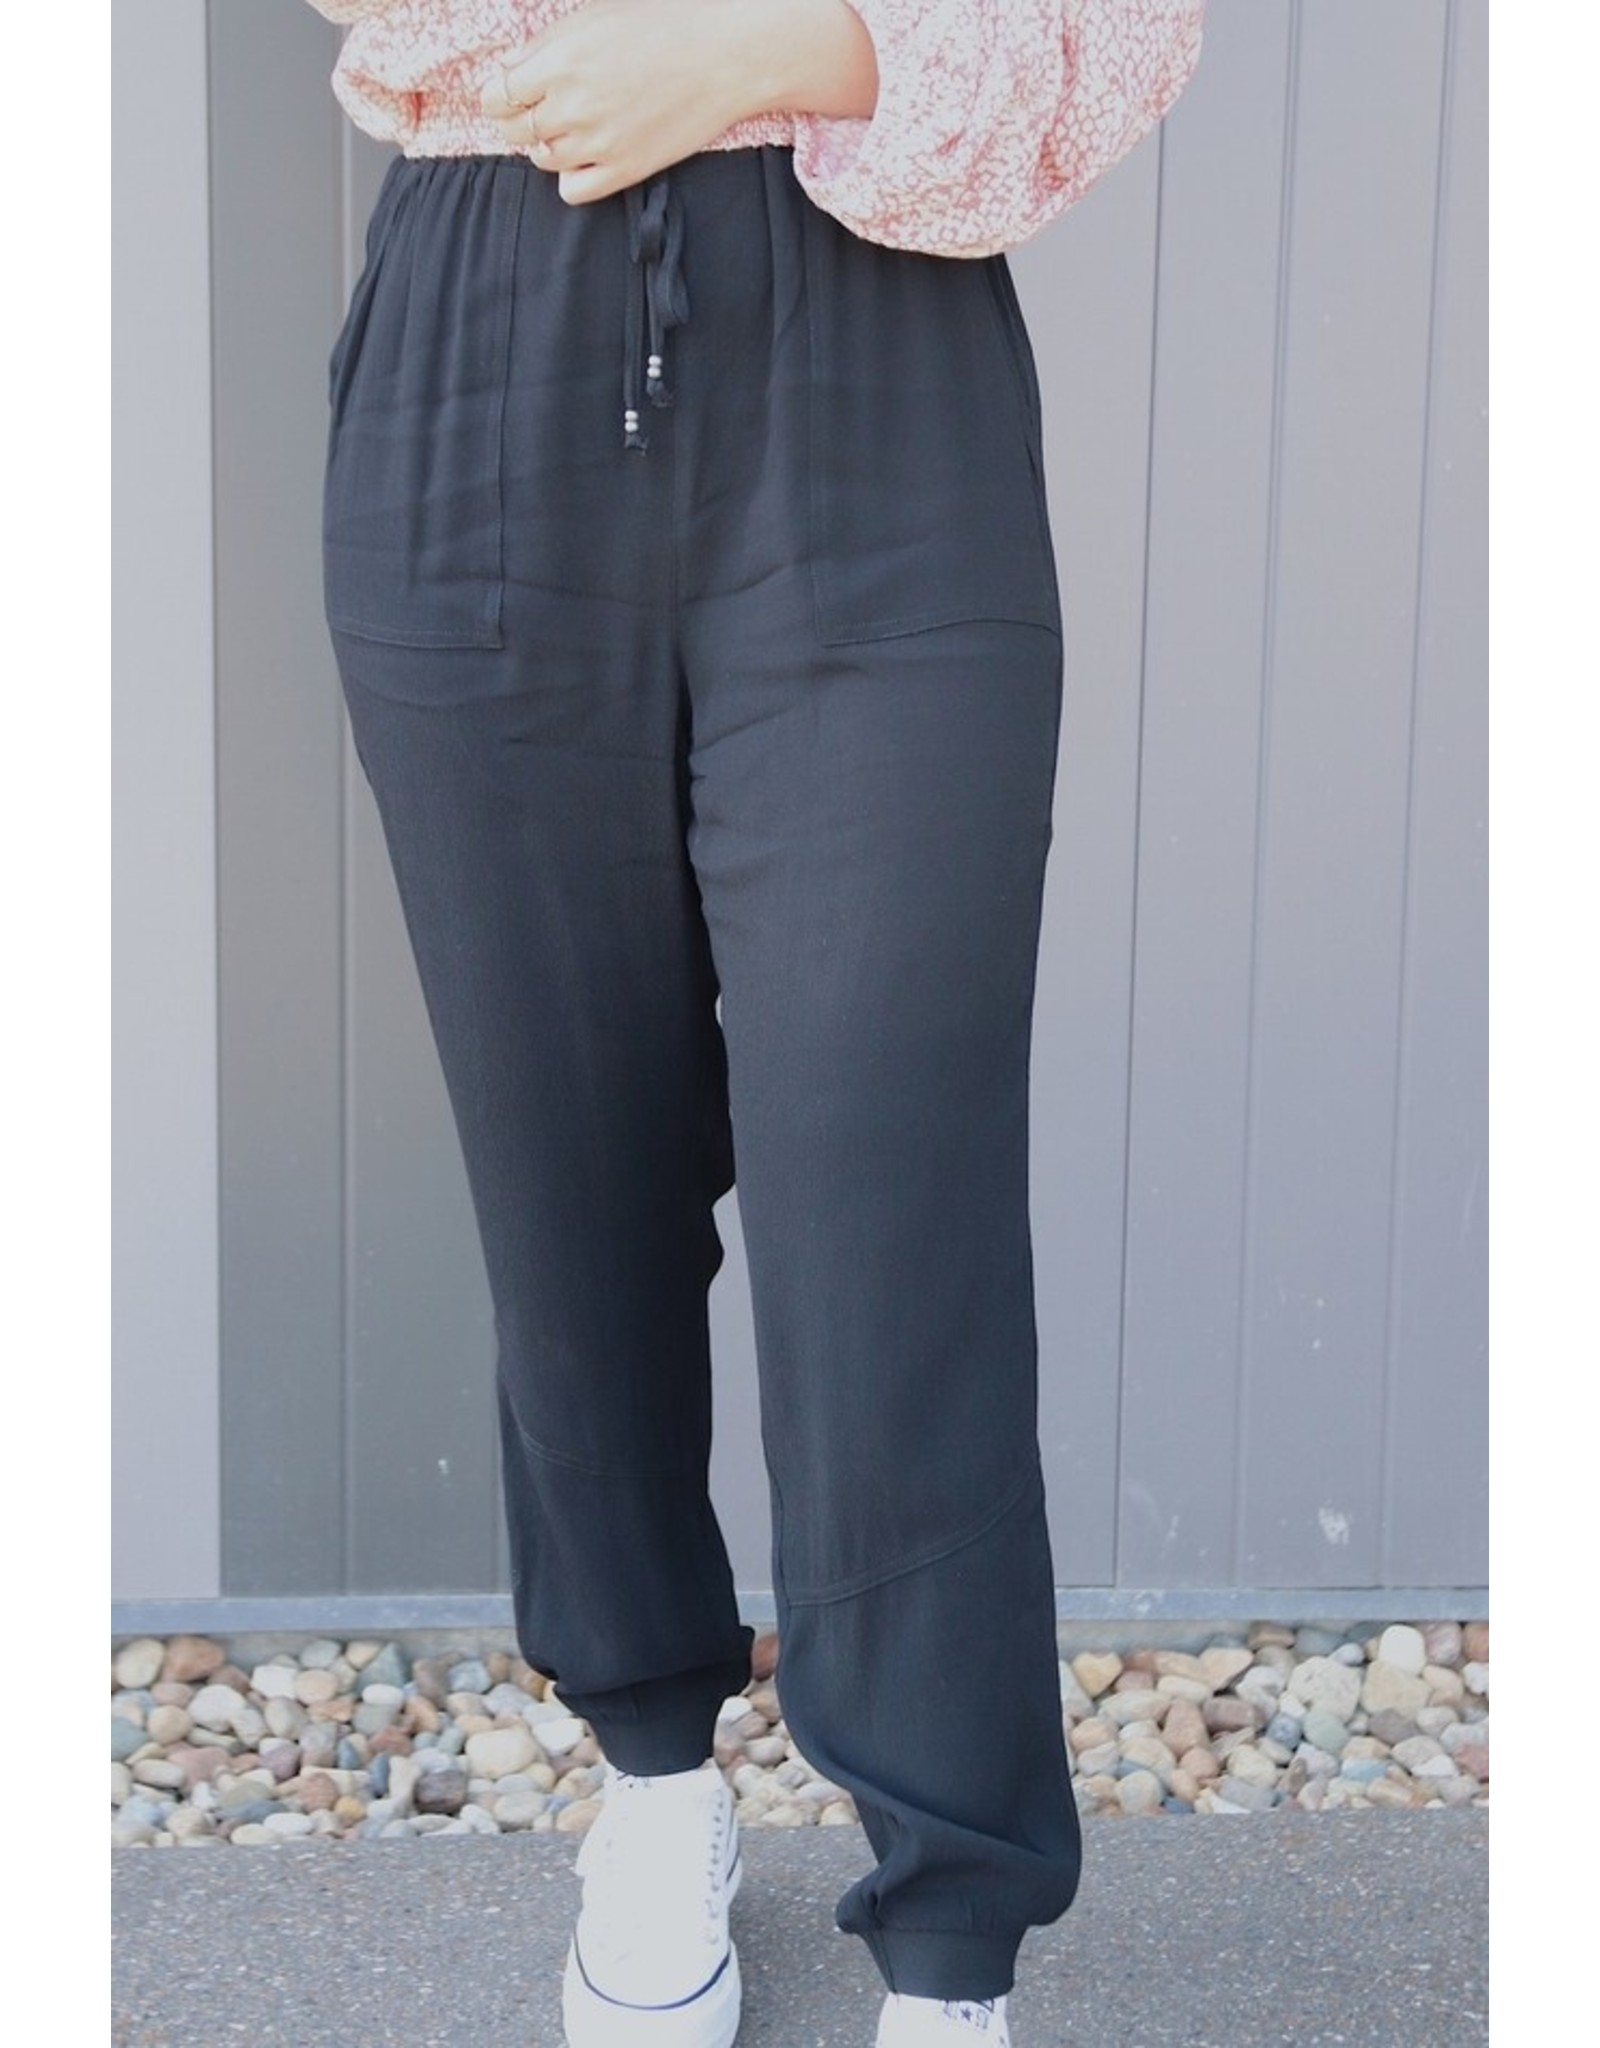 GENTLE FAWN STORM WITH POCKET JOGGERS